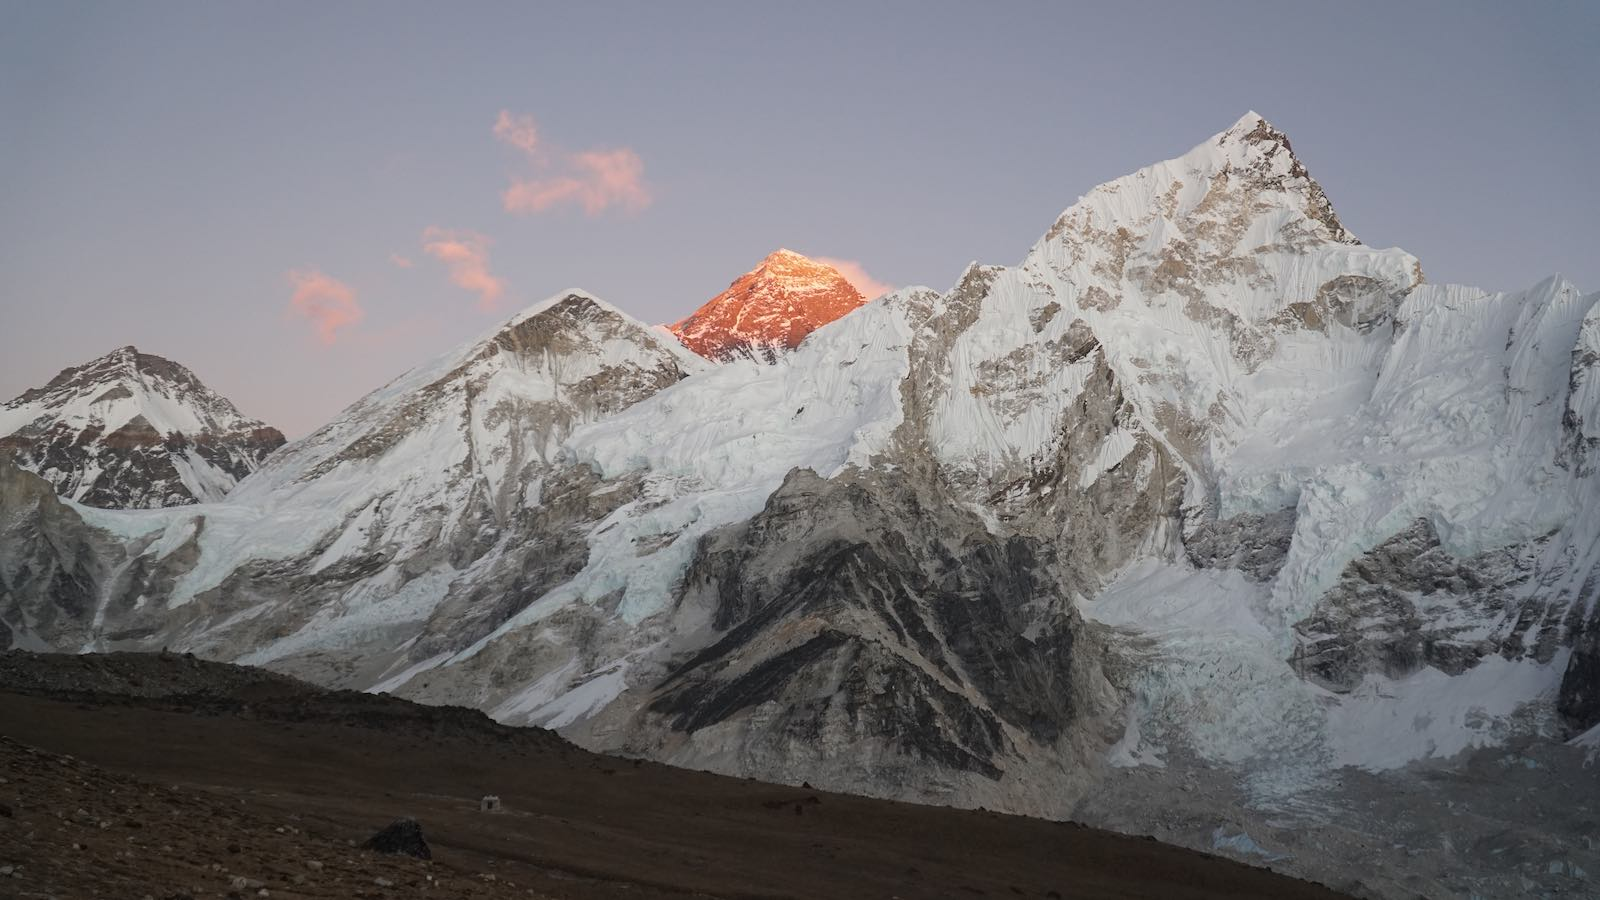 Afterwards I hiked up to a viewpoint near Gorakshep for a view of everest during sunset. It really highlights that it is the highest peak around here even though it doesn't look like it from first glance.